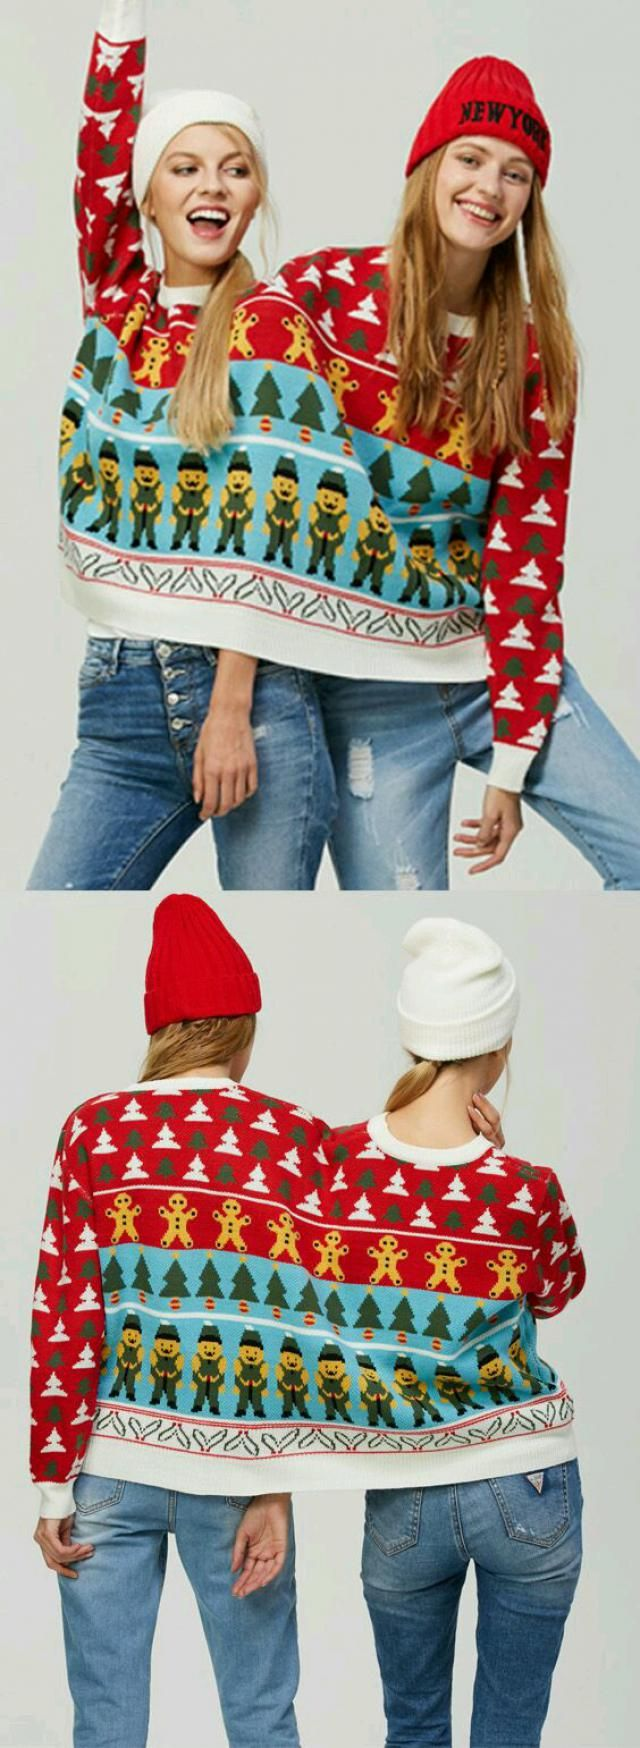 Two people in a sweater. Too cute. Holidays come to us.